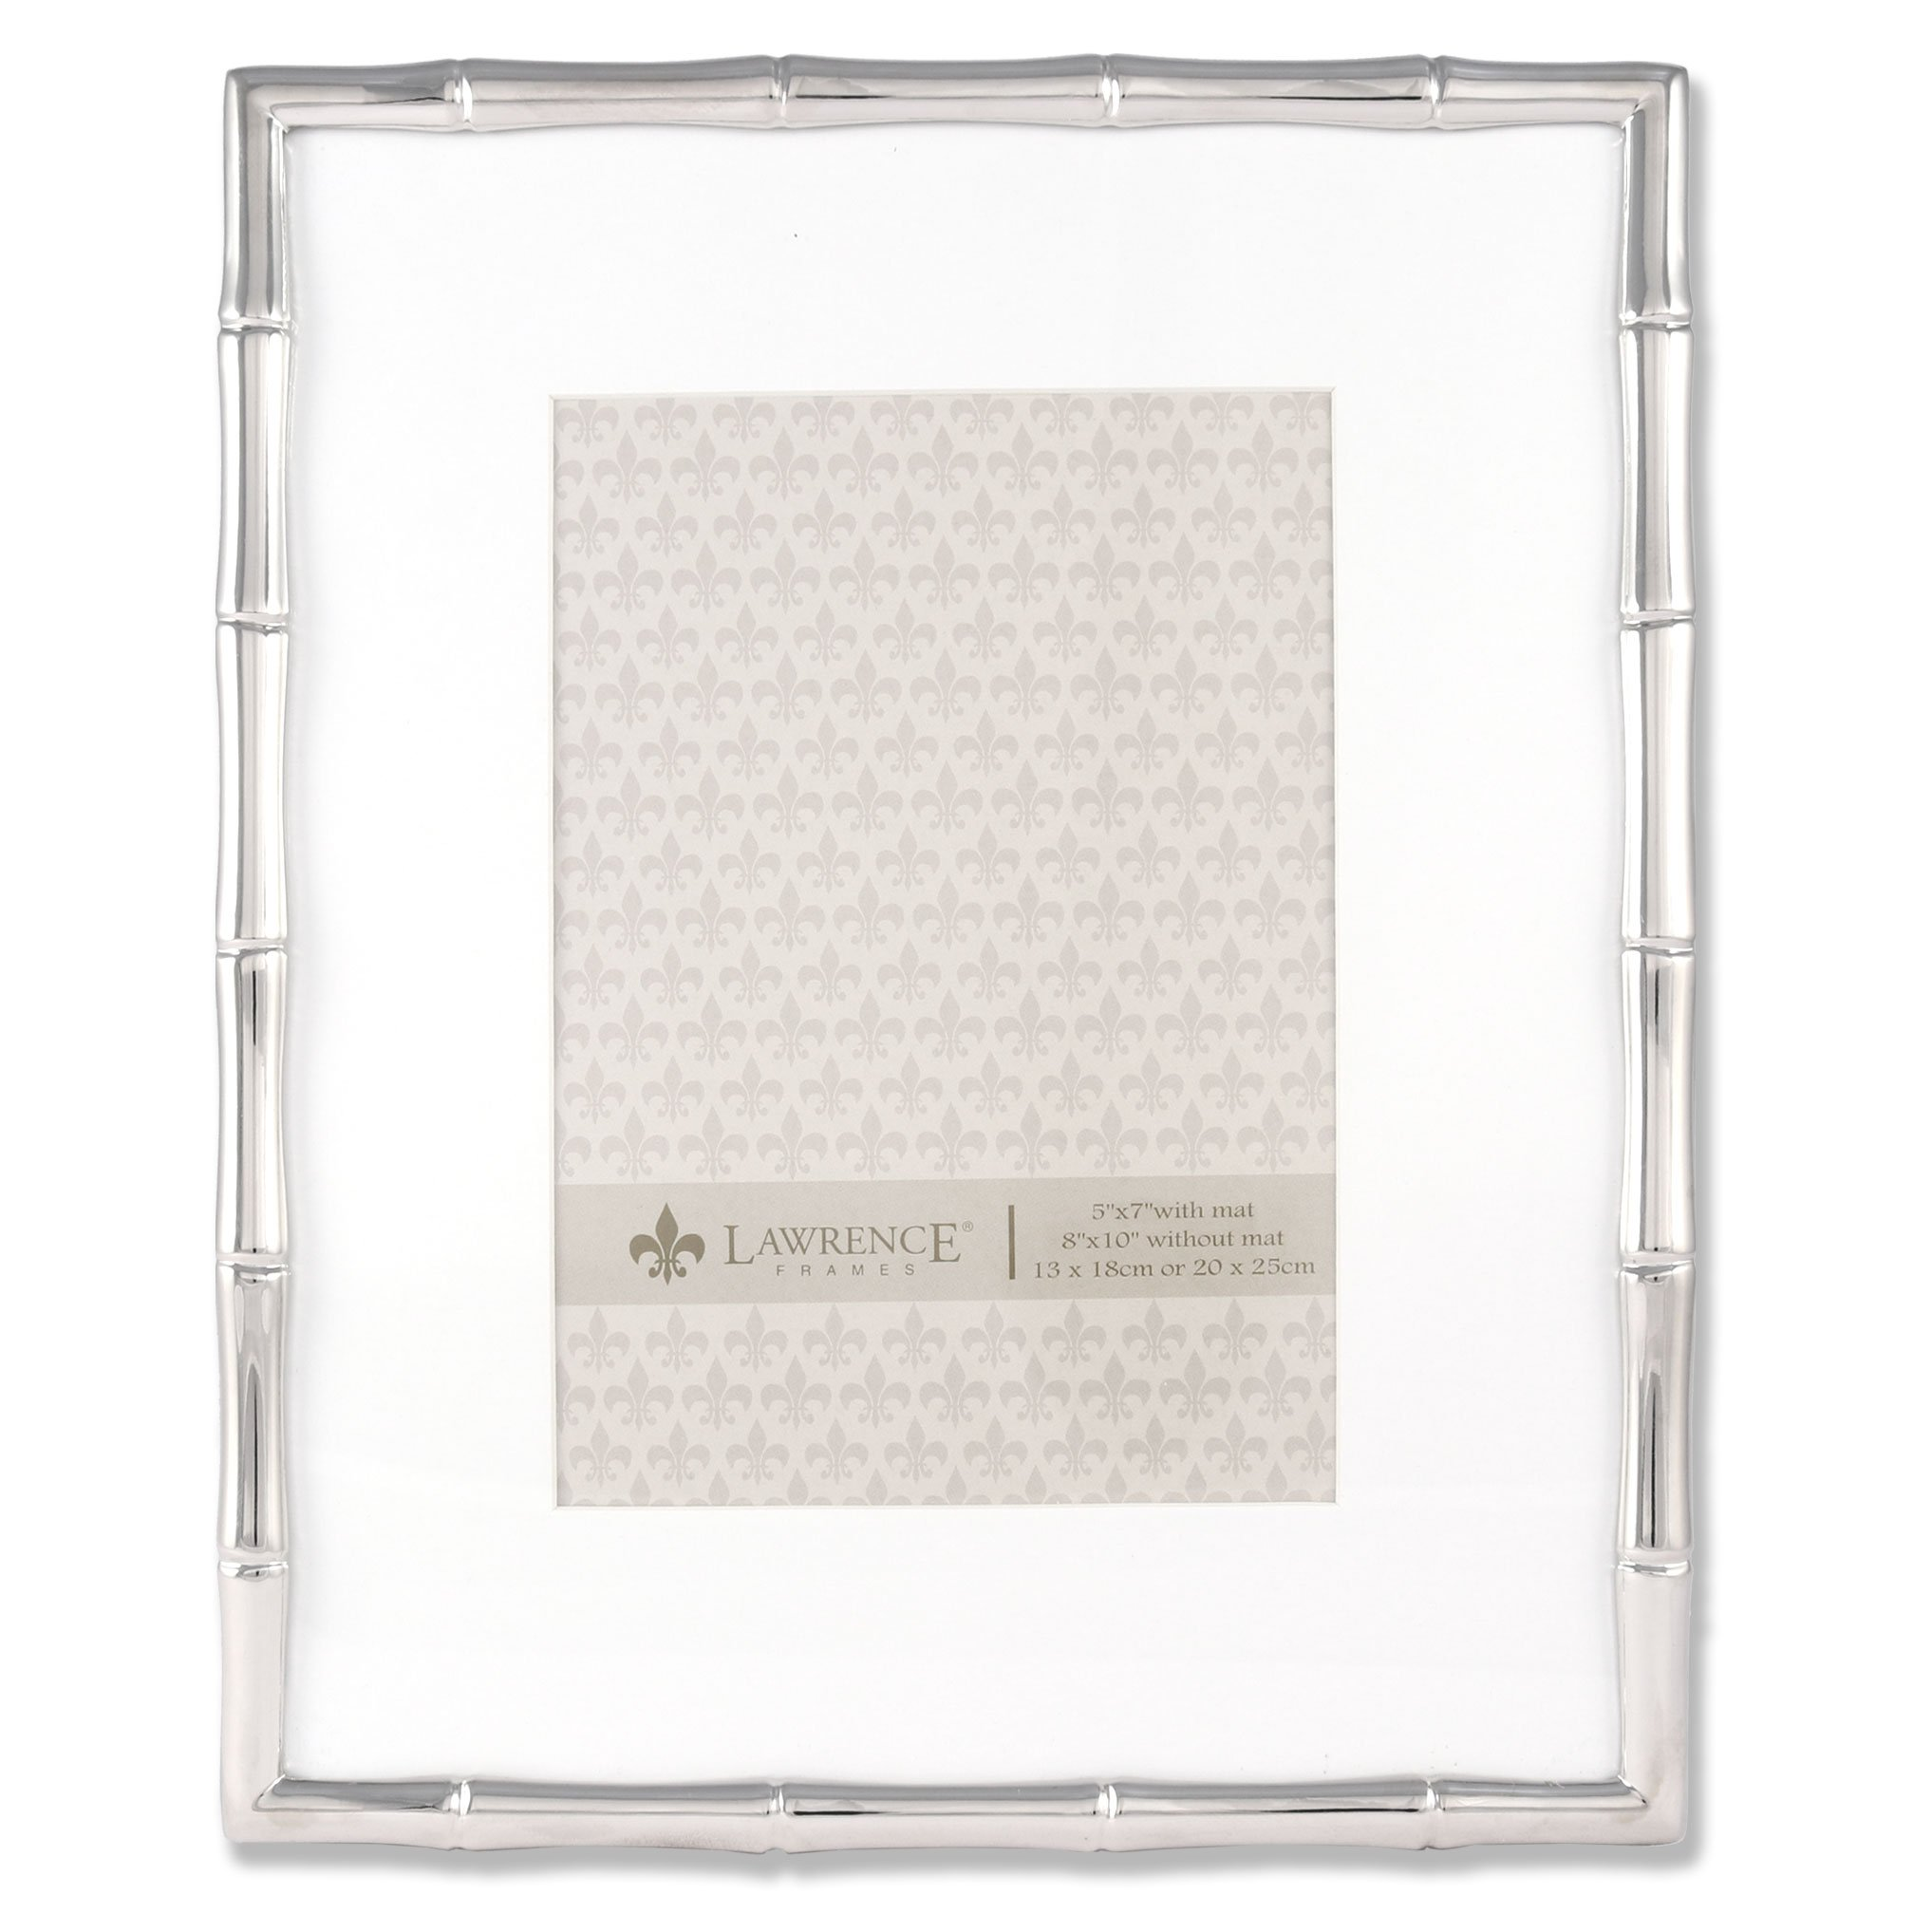 Lawrence Frames 710180 5 by 7-Inch Silver Metal Bamboo Picture Frame, 8 by 10-Inch Matted by Lawrence Frames